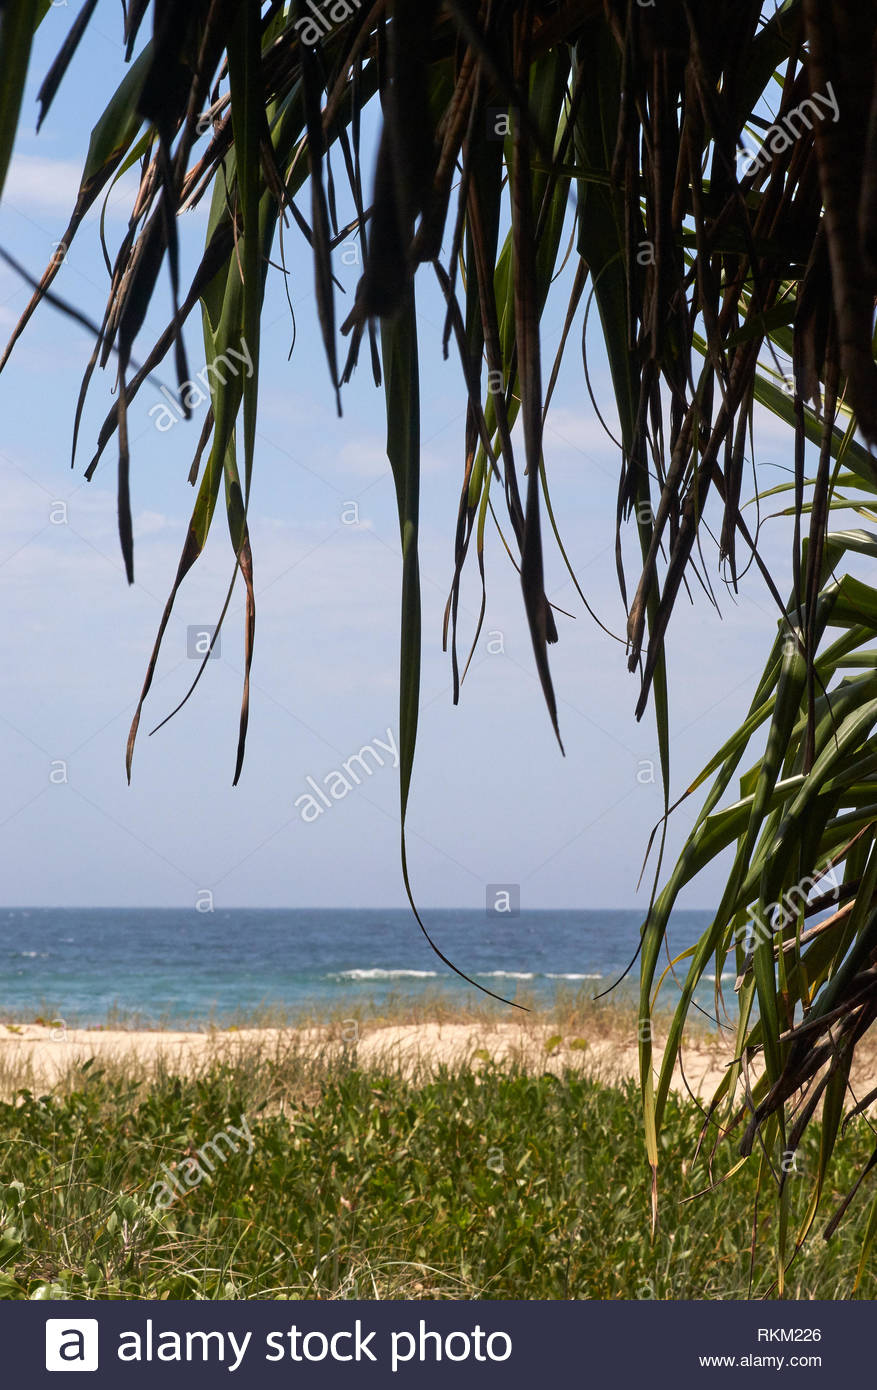 A view of the Pacific Ocean, taken north of Iluka, NSW, Australia; bordered by a Pandanus tree / Screw Pine, beach, dunes, sky and vegetation as well. - Stock Image